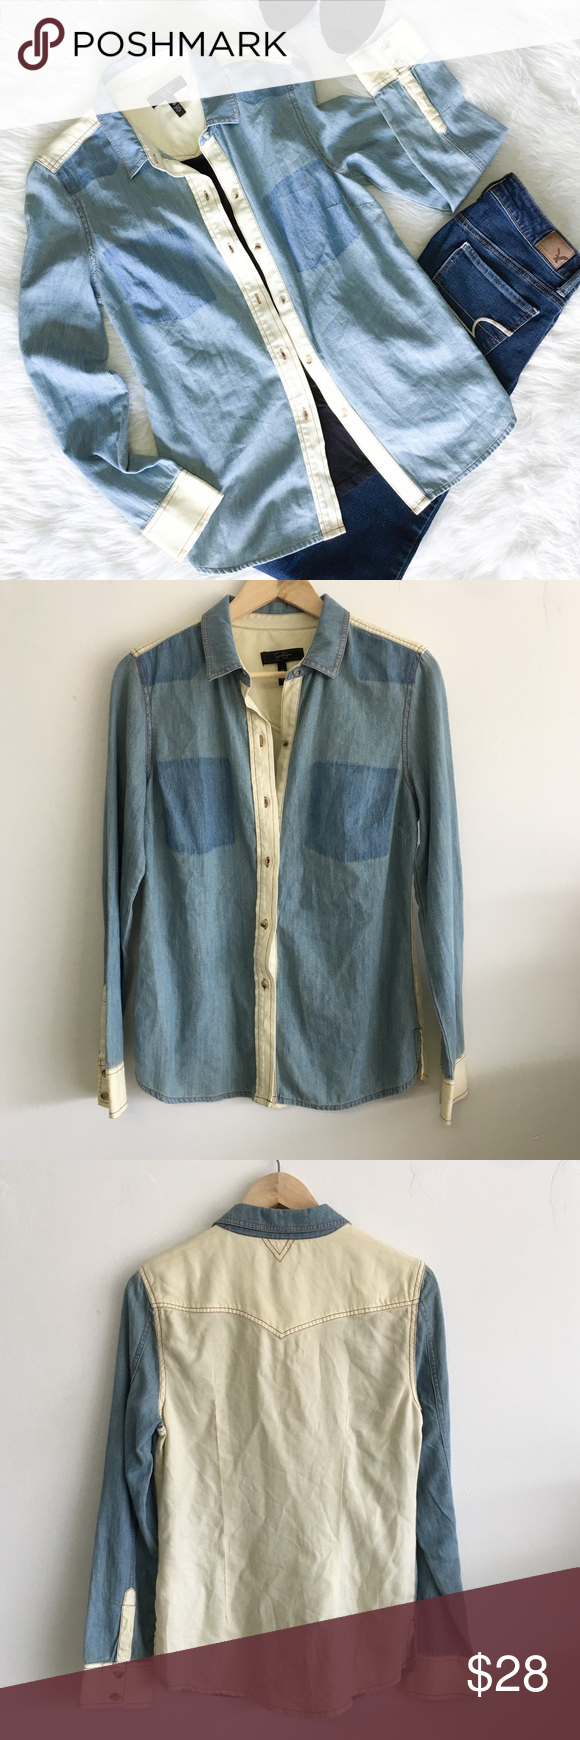 Jessica Simpson No Pocket Button Down Medium Jessica Simpson no pocket cream and denim button down. Size Large. EUC.❌ No Trades ❌ No off Poshmark transactions ❤️ Bundle and save 📬 Fast shipper ❤️ I love reasonable offers Jessica Simpson Tops Button Down Shirts